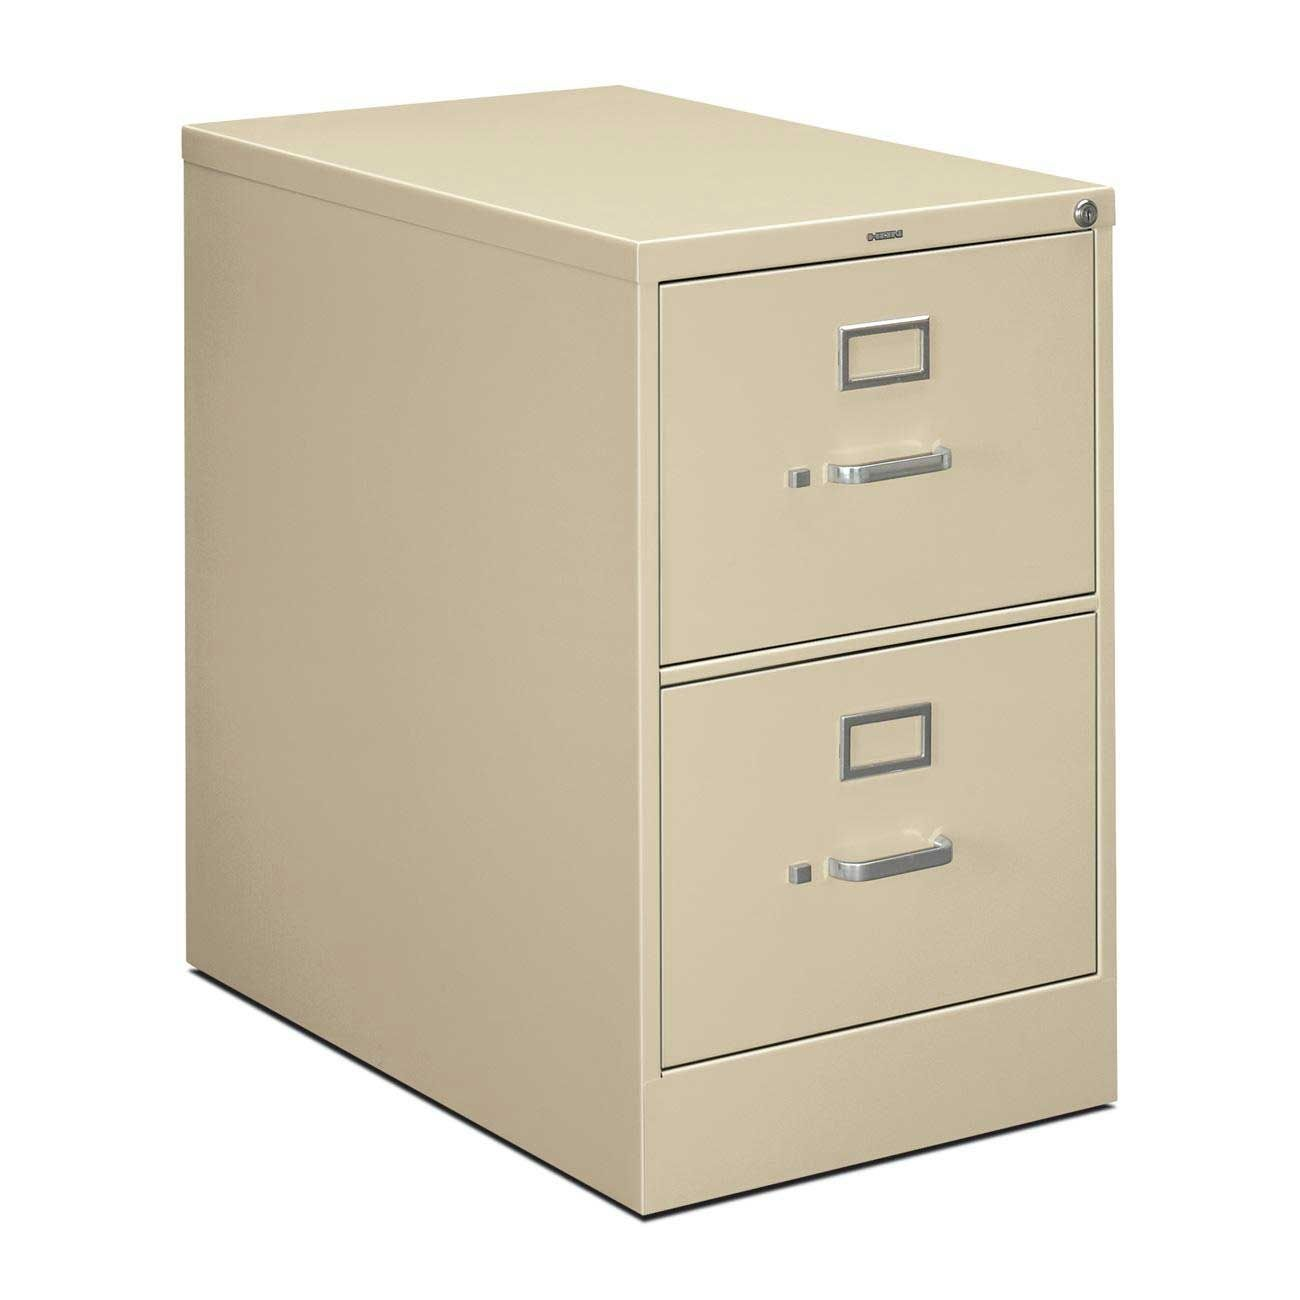 2 Door Filing Cabinet With Lock Having A Kitchen That Ears Tired And Worn Is Never Enjoyable For Anyone